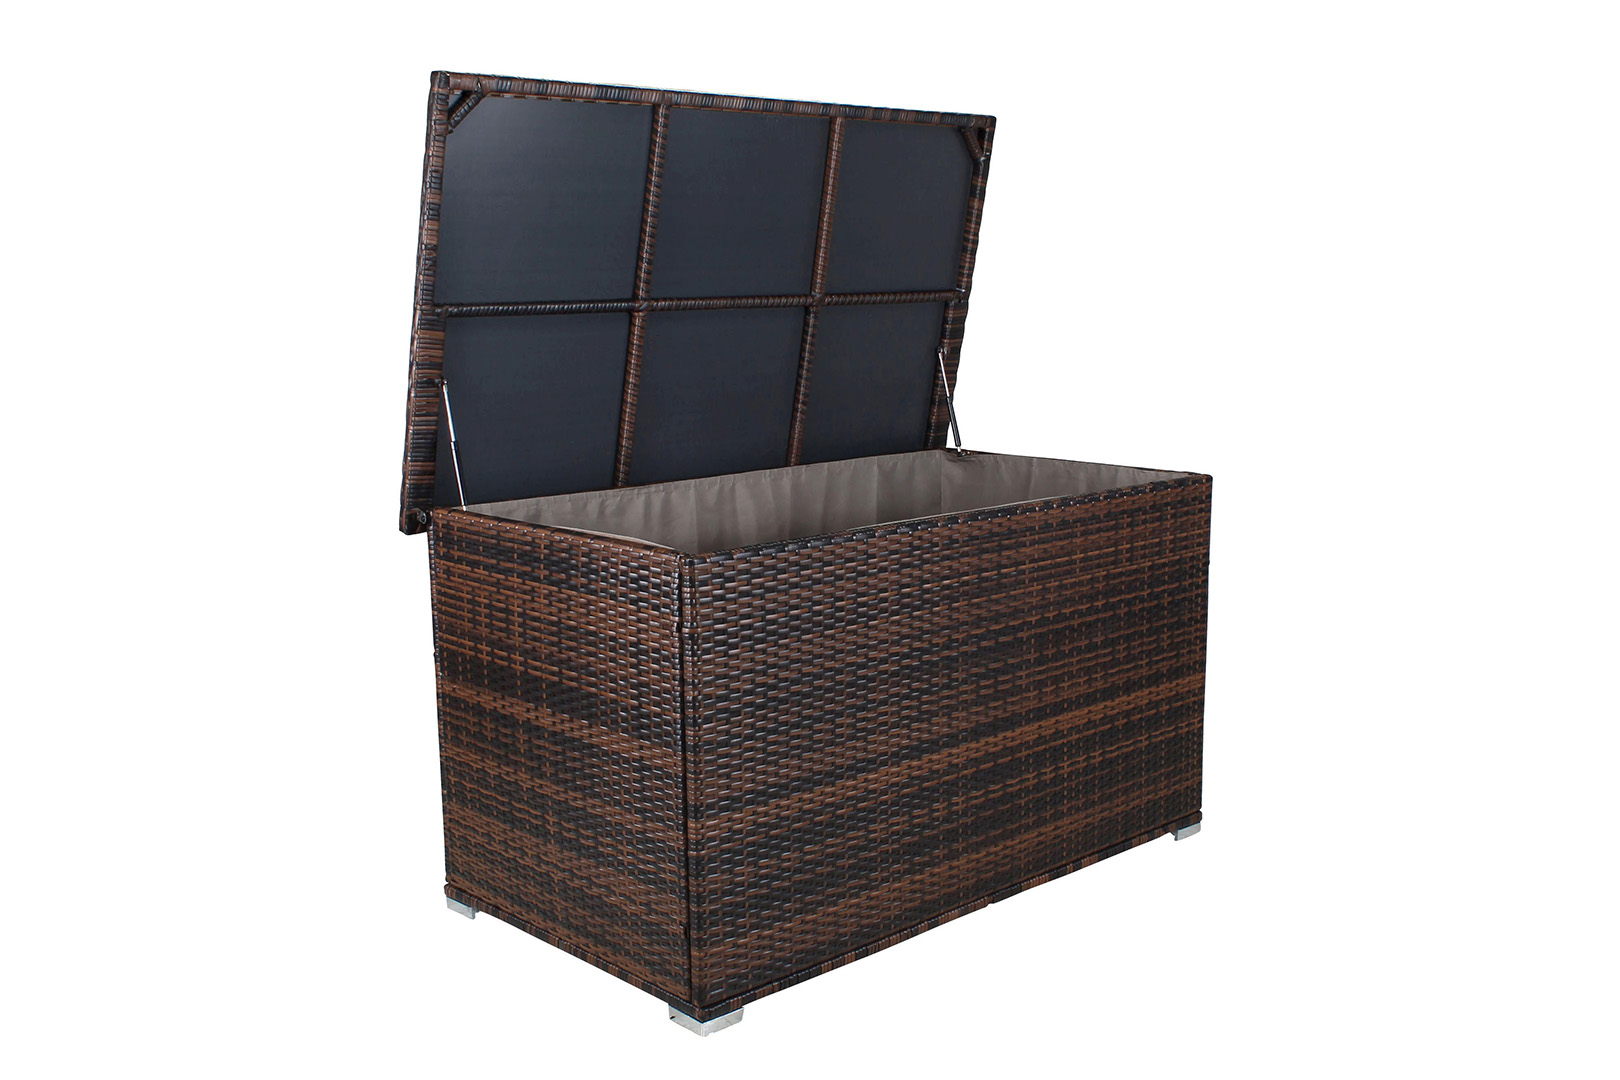 quadfactory bottrop miweba caribbian polyrattan auflagenbox grande 950 liter. Black Bedroom Furniture Sets. Home Design Ideas